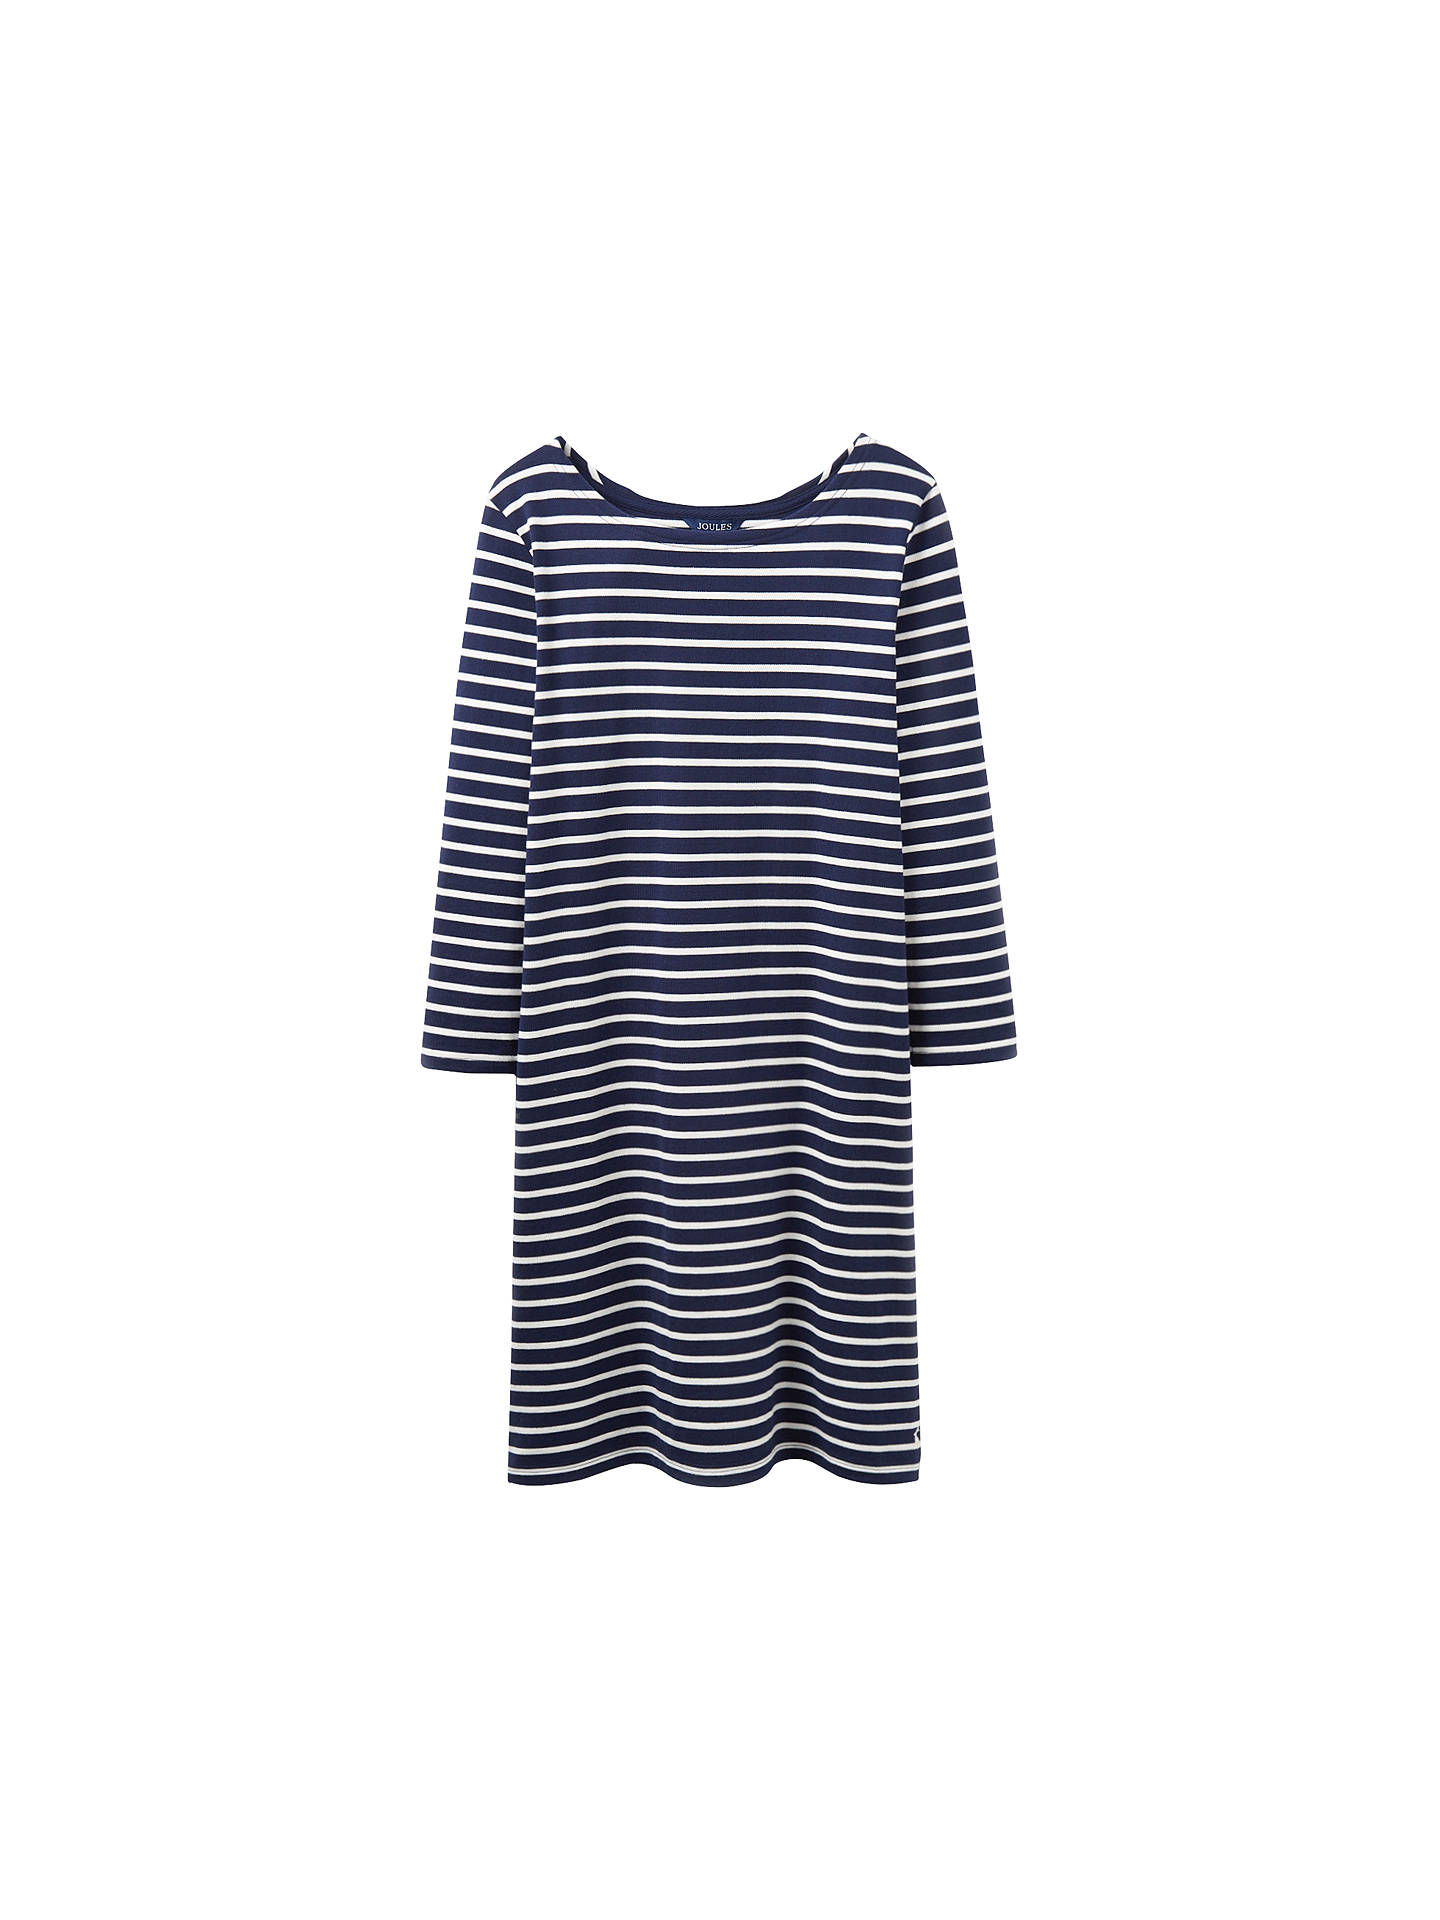 4f90d9d3d523 Buy Joules Riviera 3/4 Sleeve Jersey T-Shirt Dress, French Navy Stripe ...